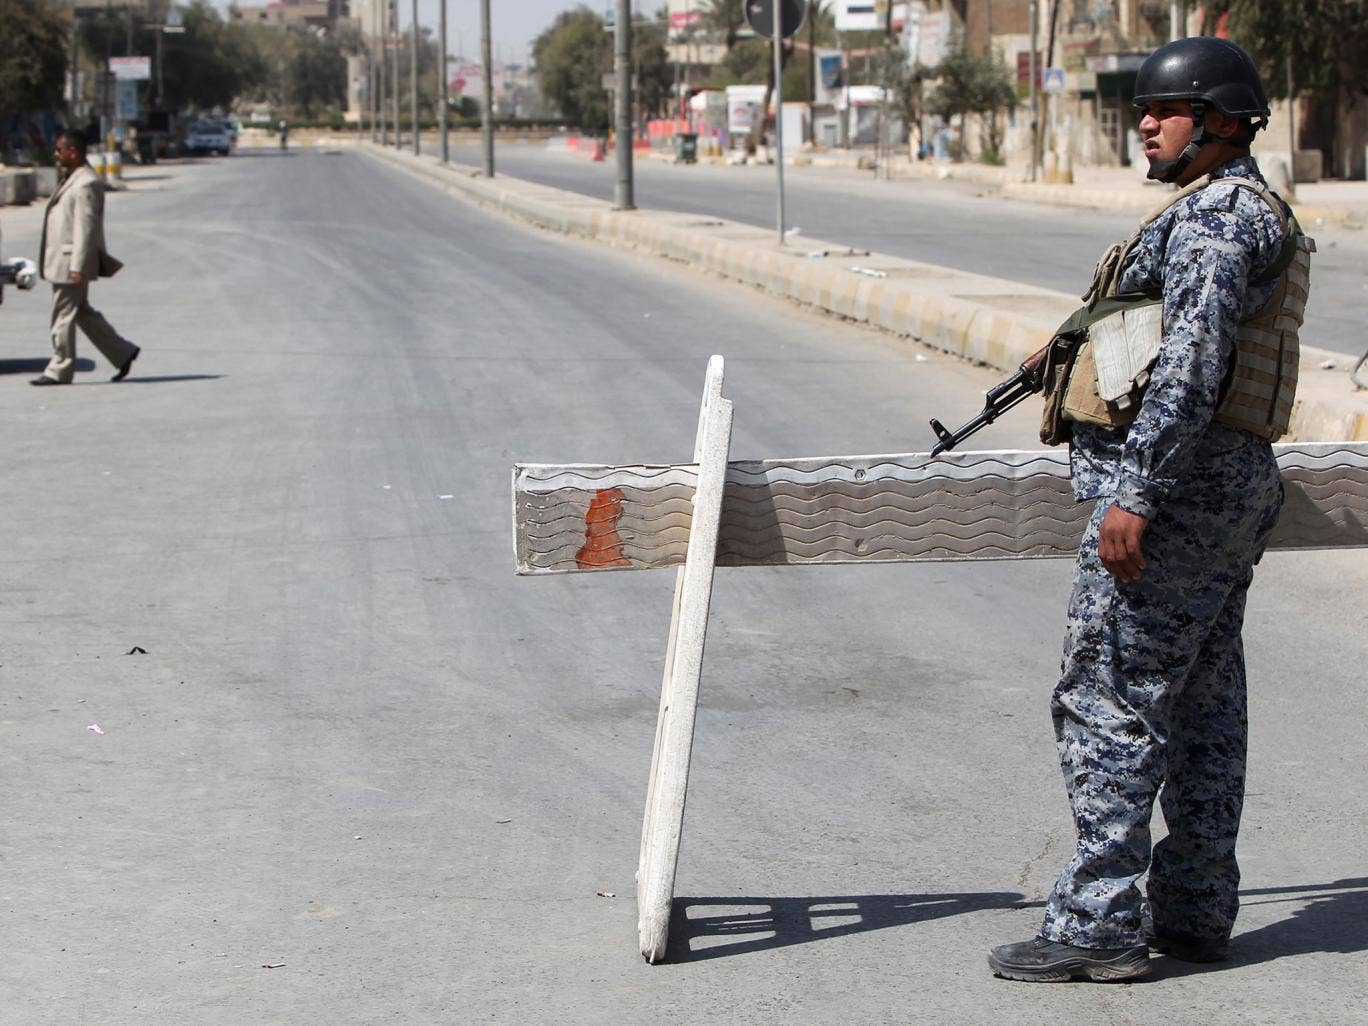 Baghdad sees near daily attacks, many claimed by the Sunni militant Islamic State group